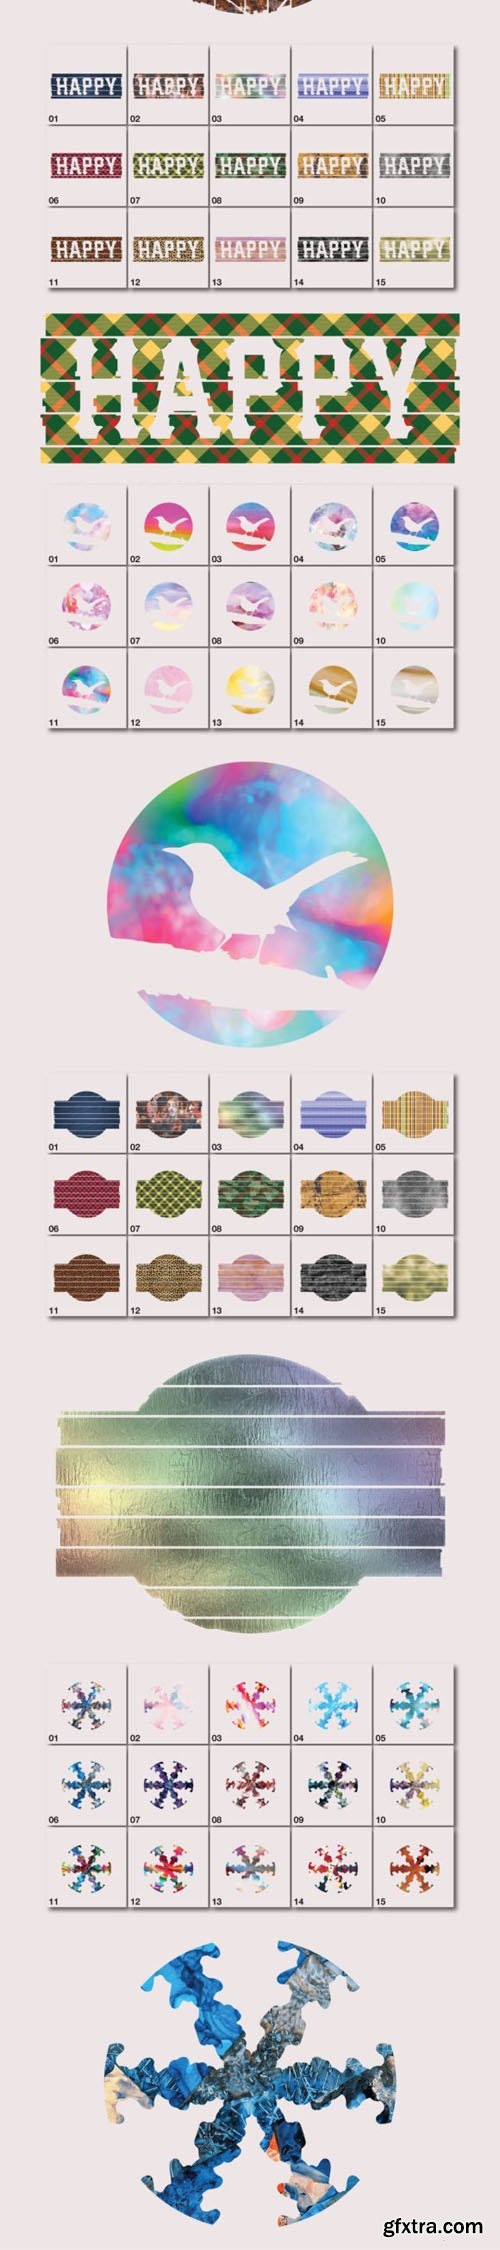 120 Background Pattern Vector Templates Collection